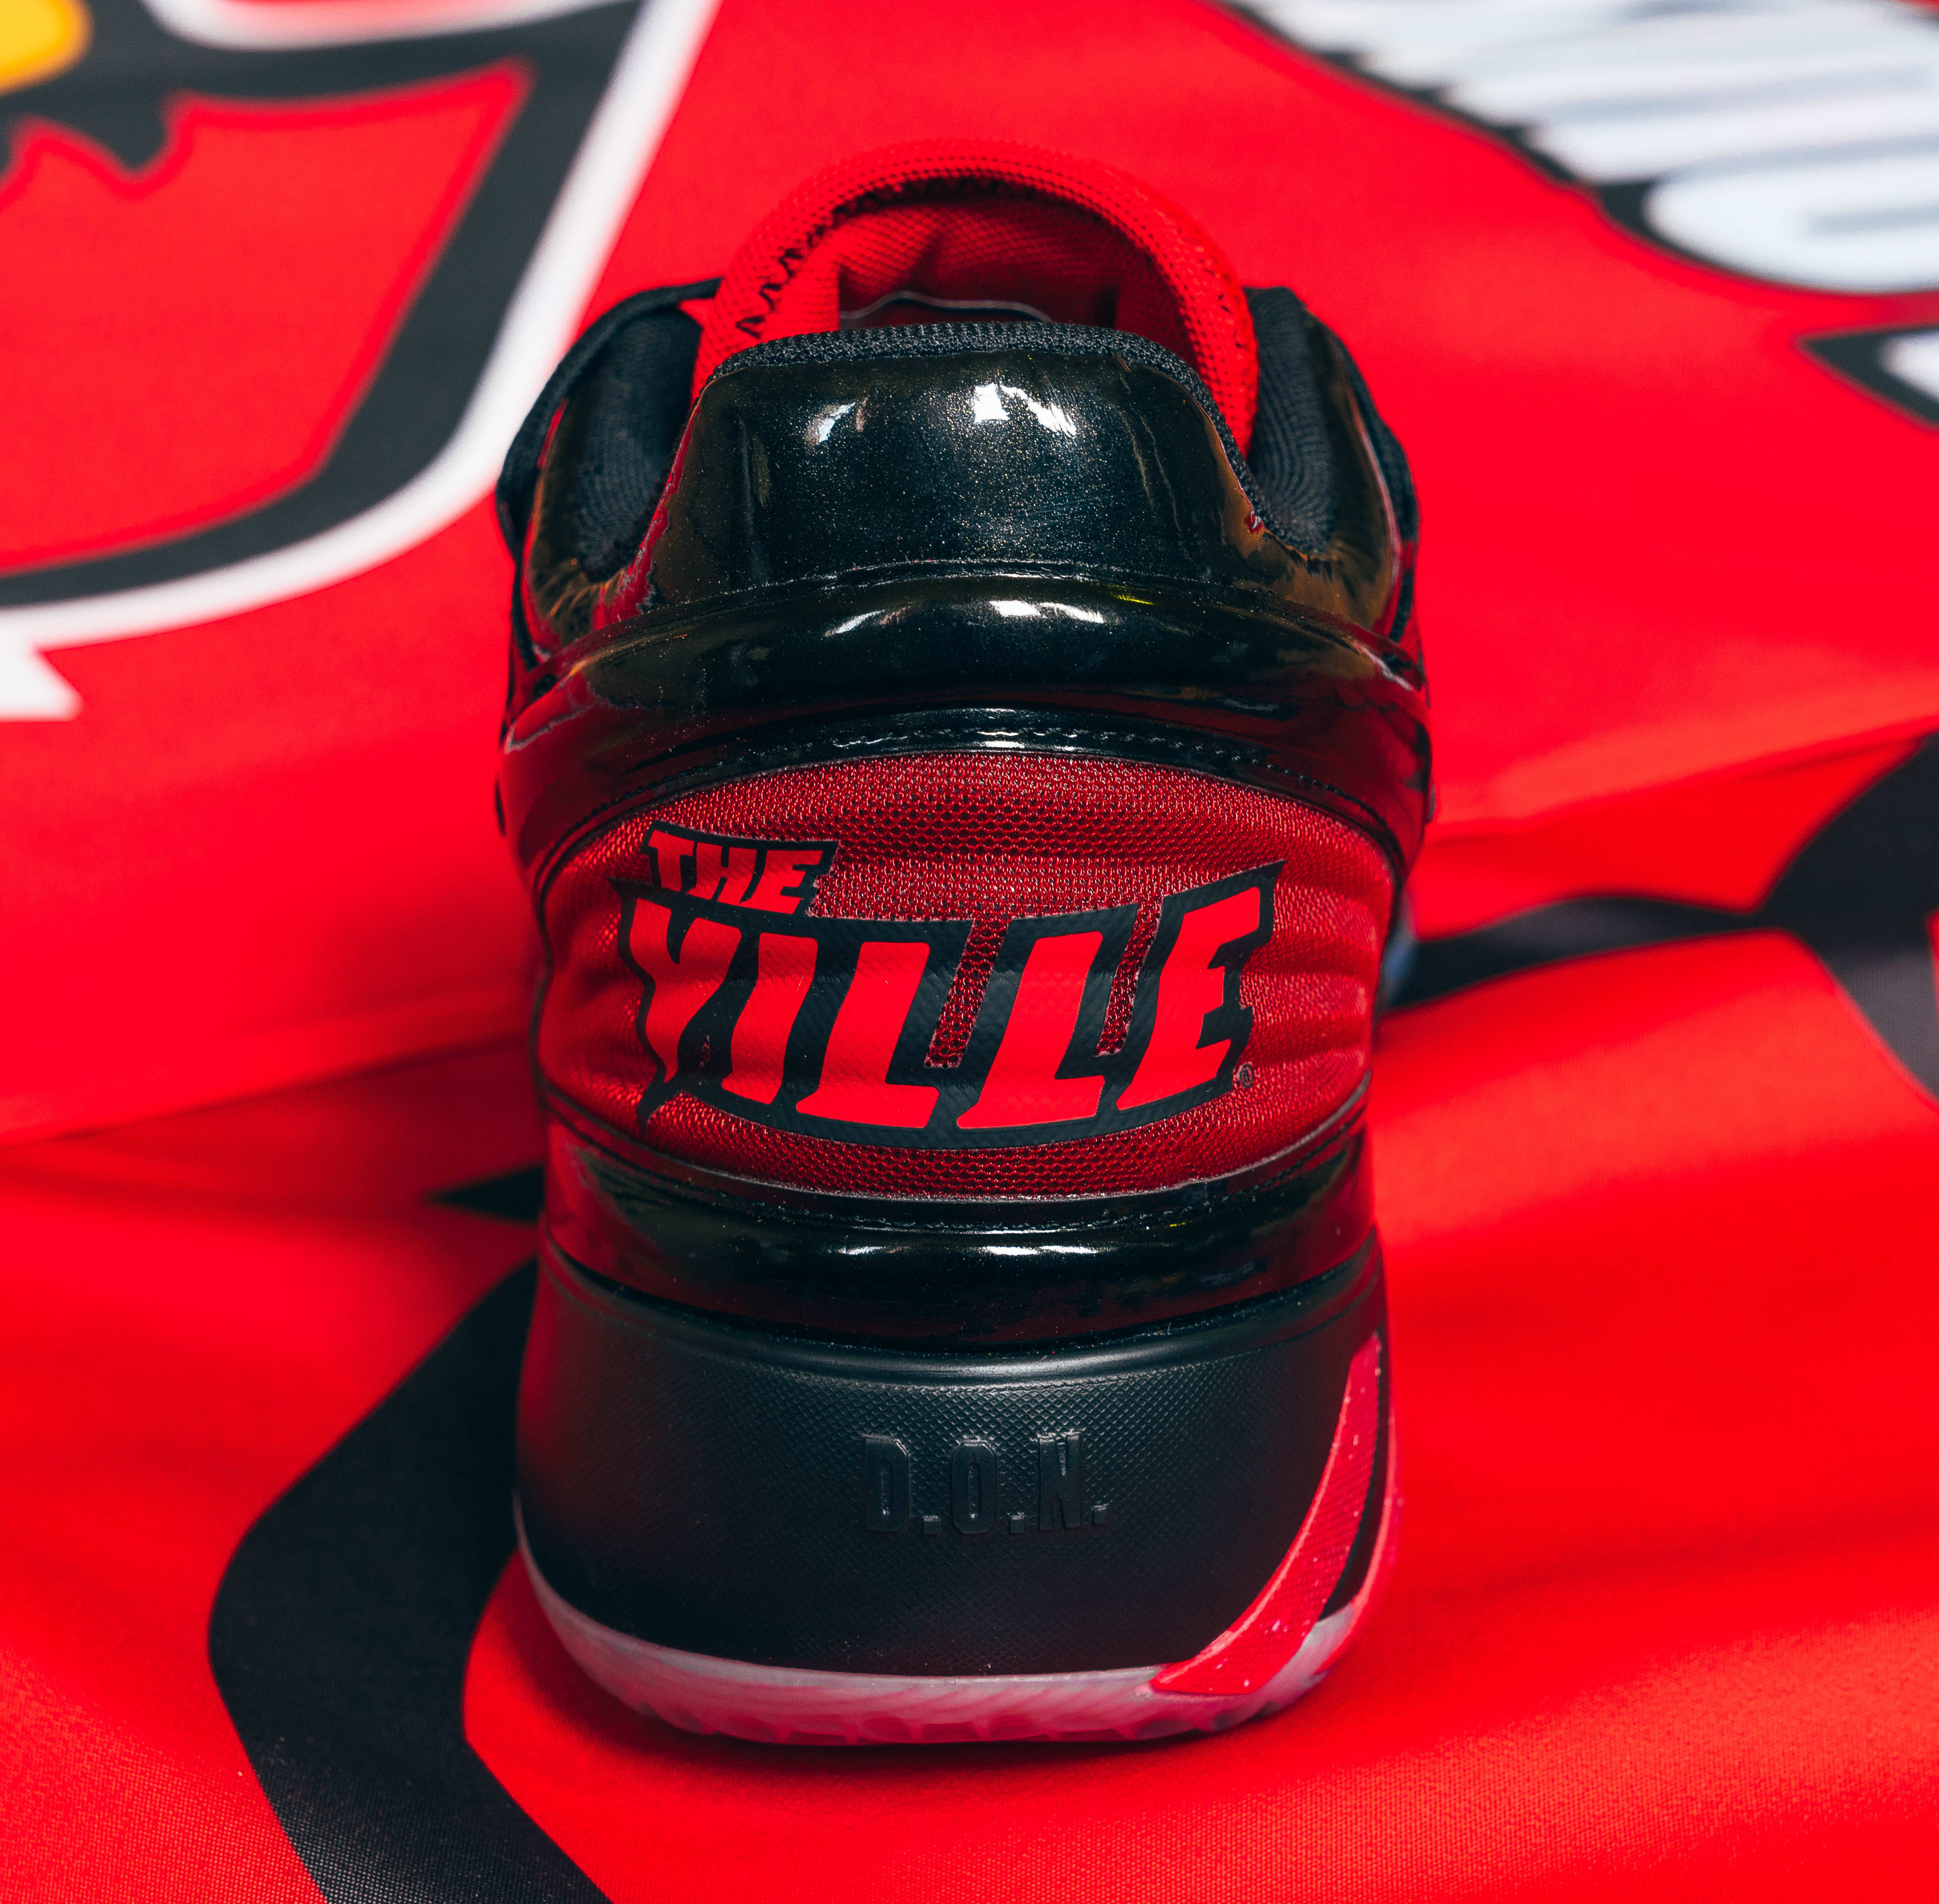 Louisville x Adidas D.O.N. Issue #2 'A Shoe For Change' Heel